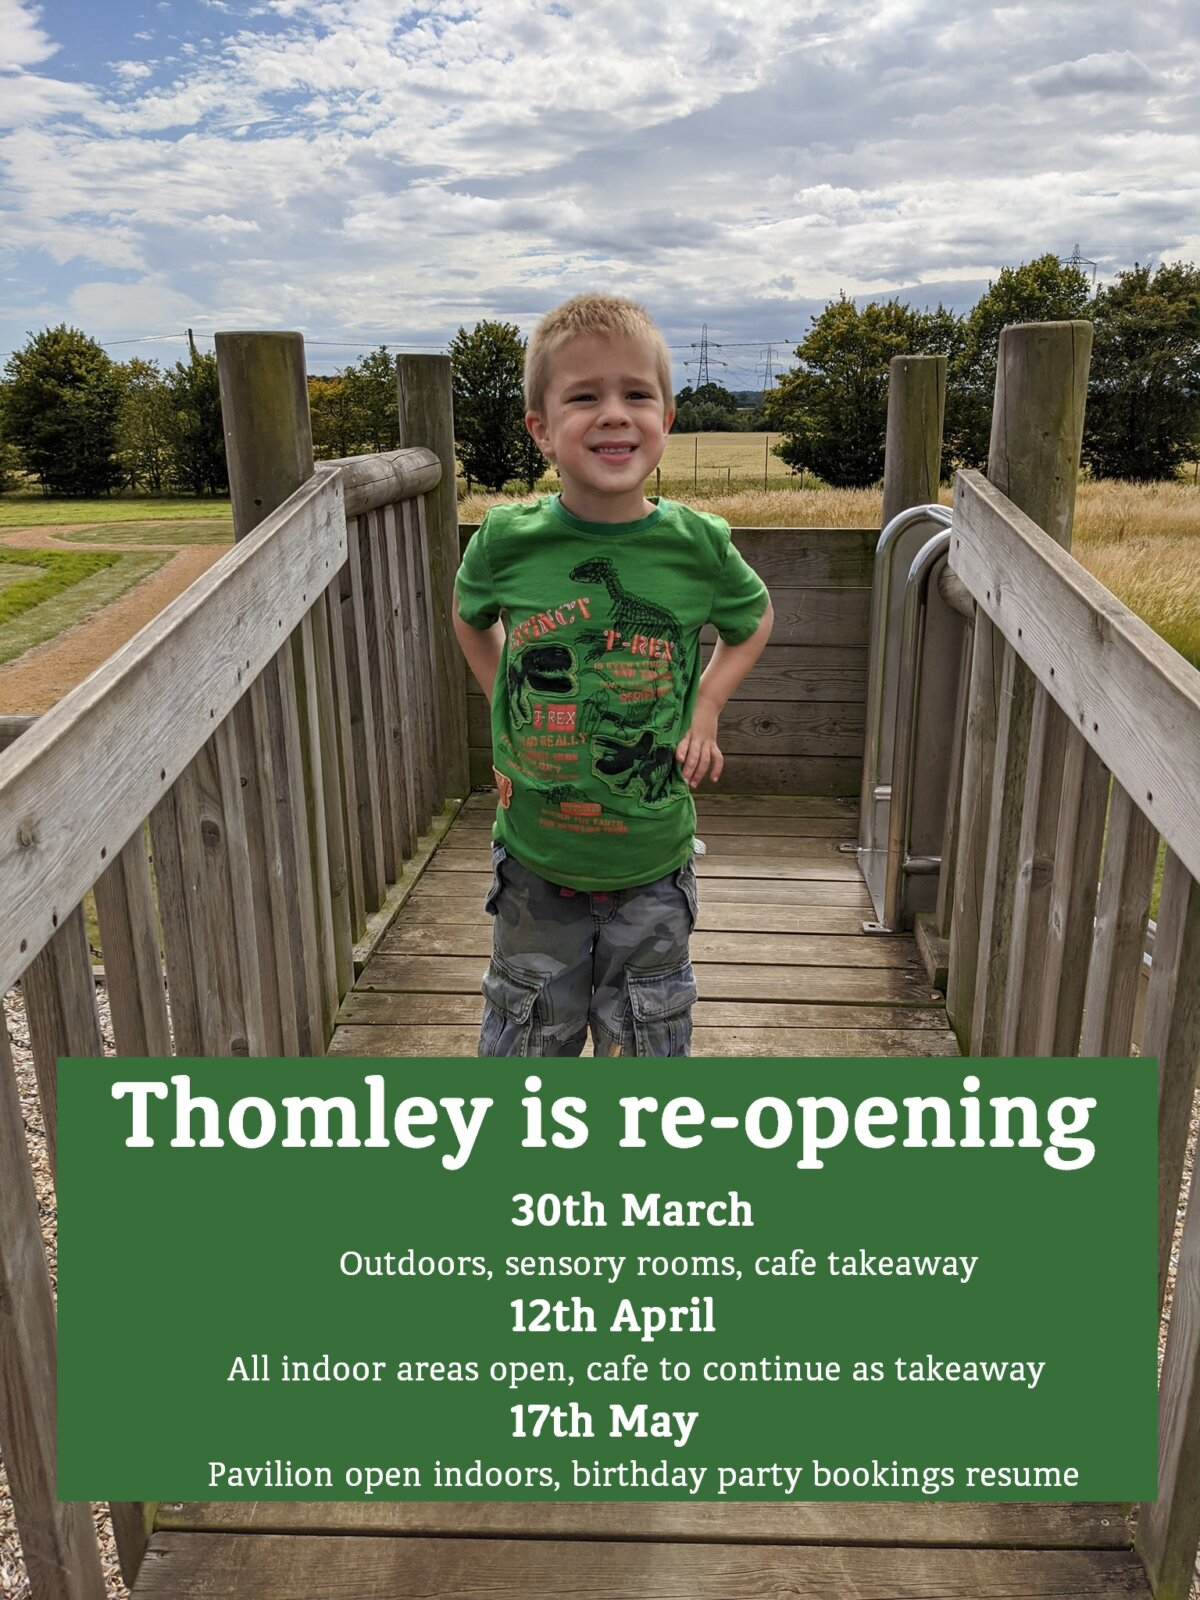 Thomley Is Re-opening On 30th March!